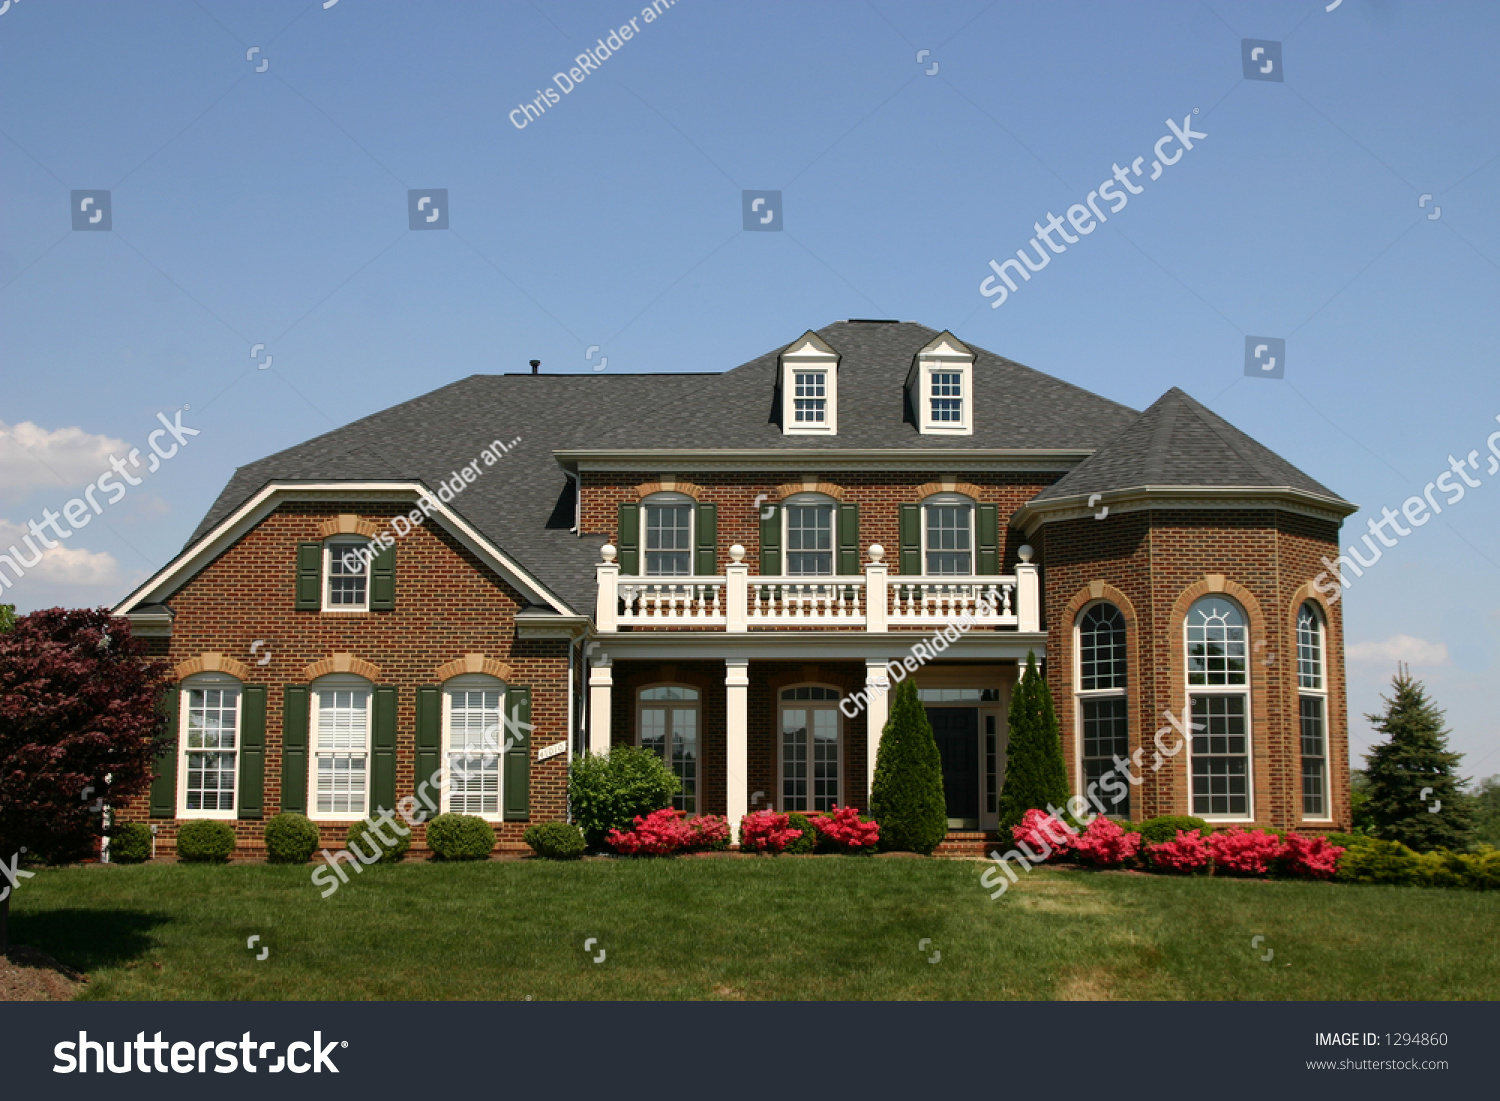 Traditional american home stock photo 1294860 shutterstock for Traditional american home